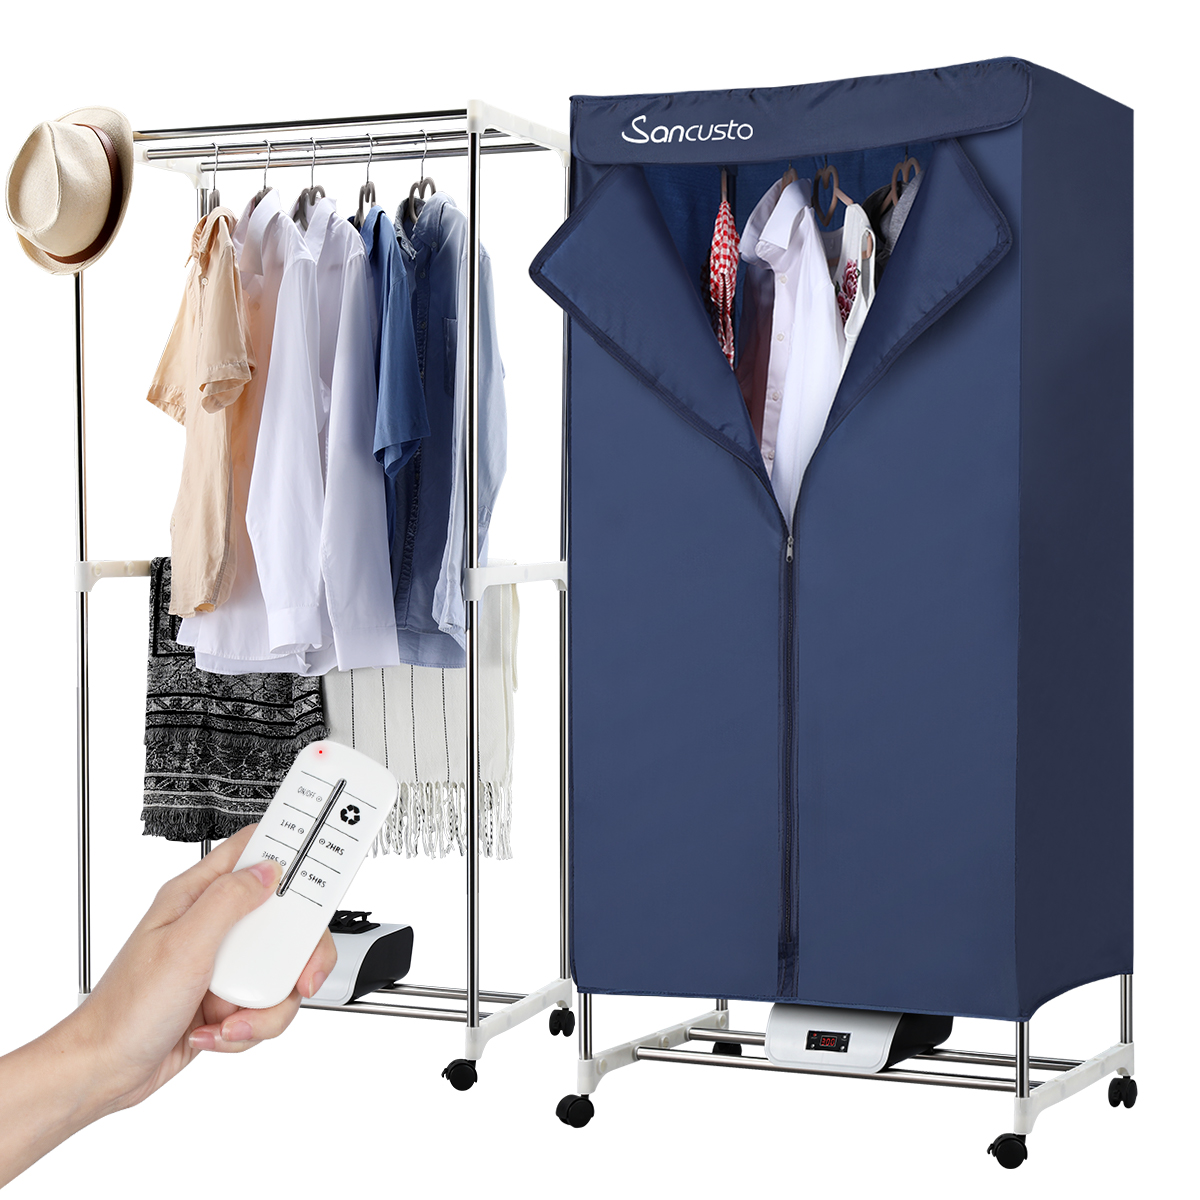 electric clothes dryer portable clothes drying rack wardrobe heated clothes airer for camping rv dorm apartment efficient clothes heater remote